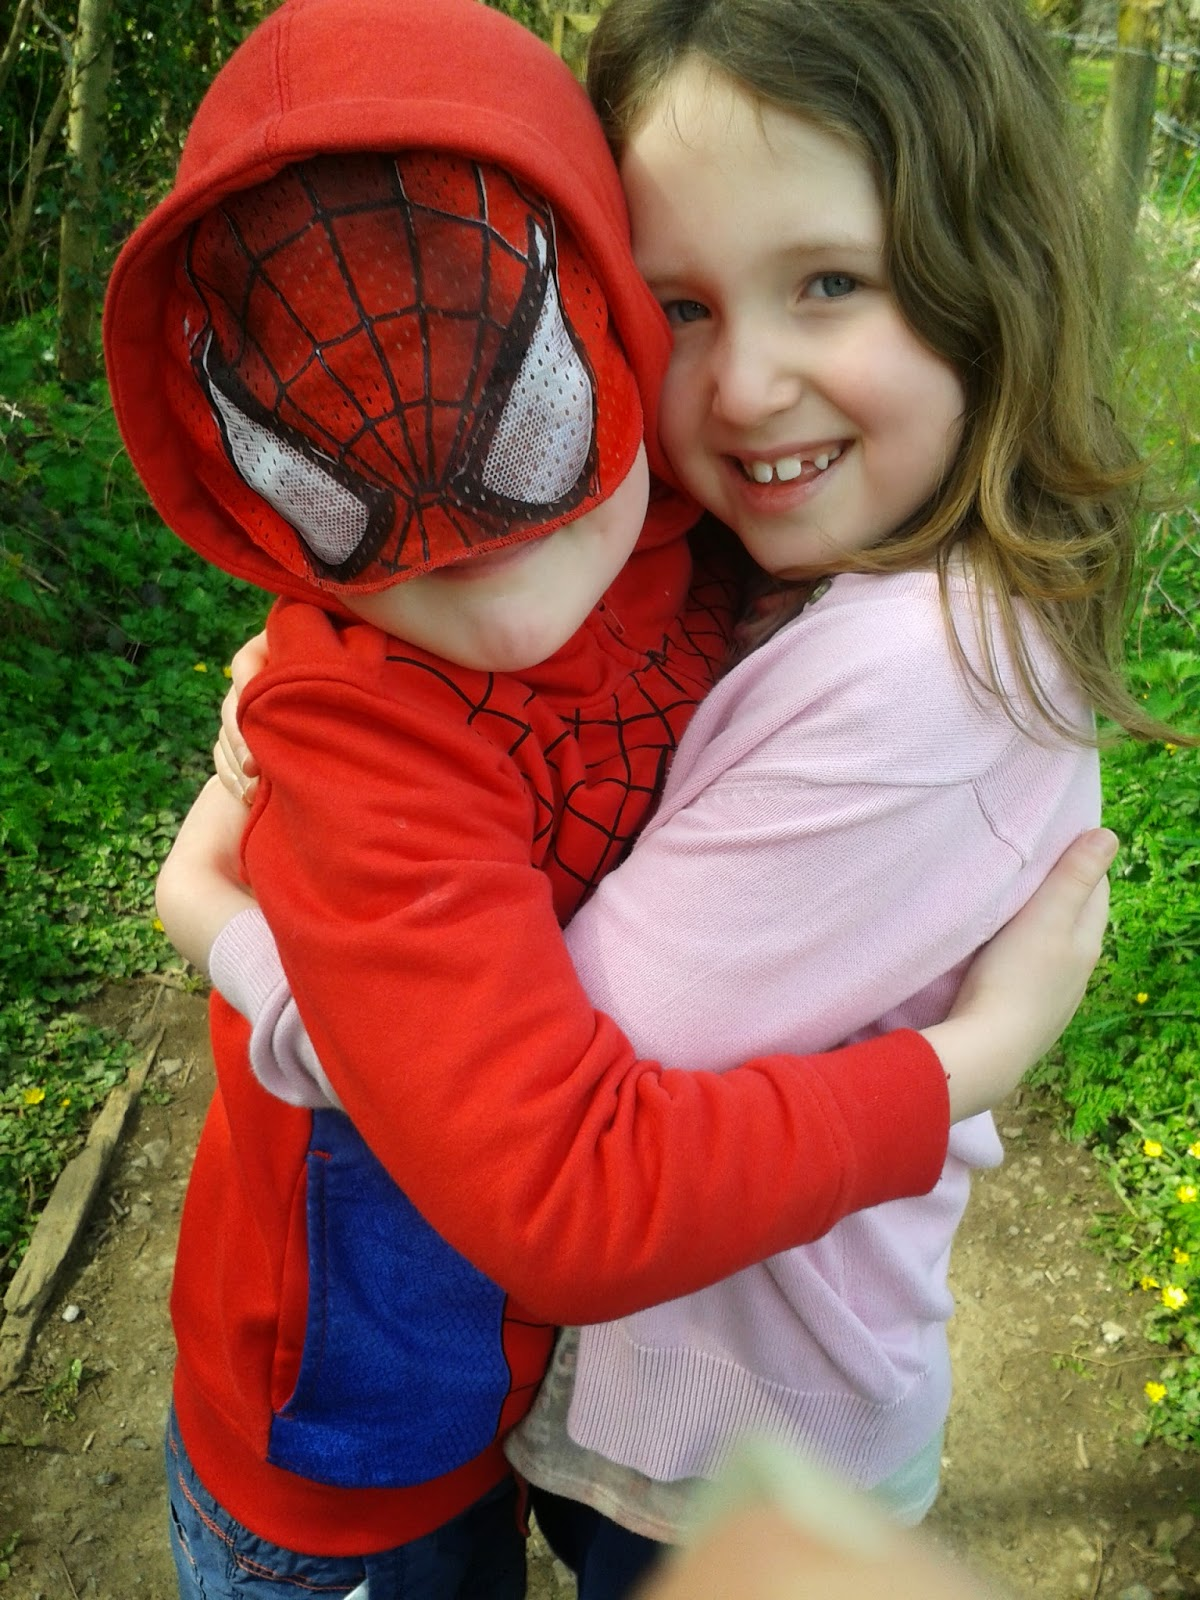 Parenting tips - Caitlin & Ieuan hugging each other at Dyffryn Gardens, Wales